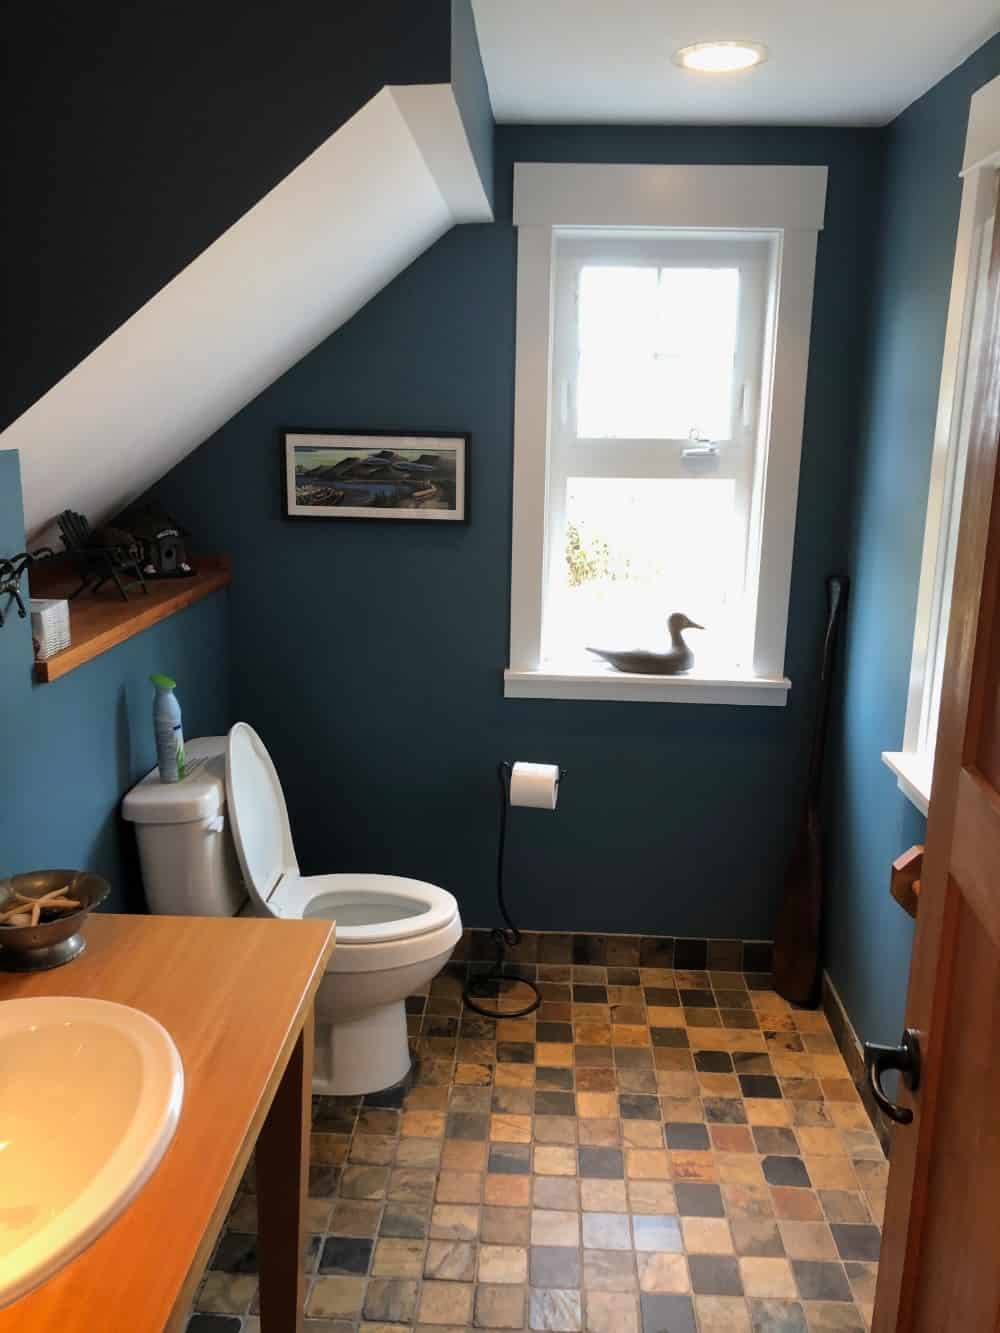 I love the blue color scheme and decor of the powder room on the main floor.